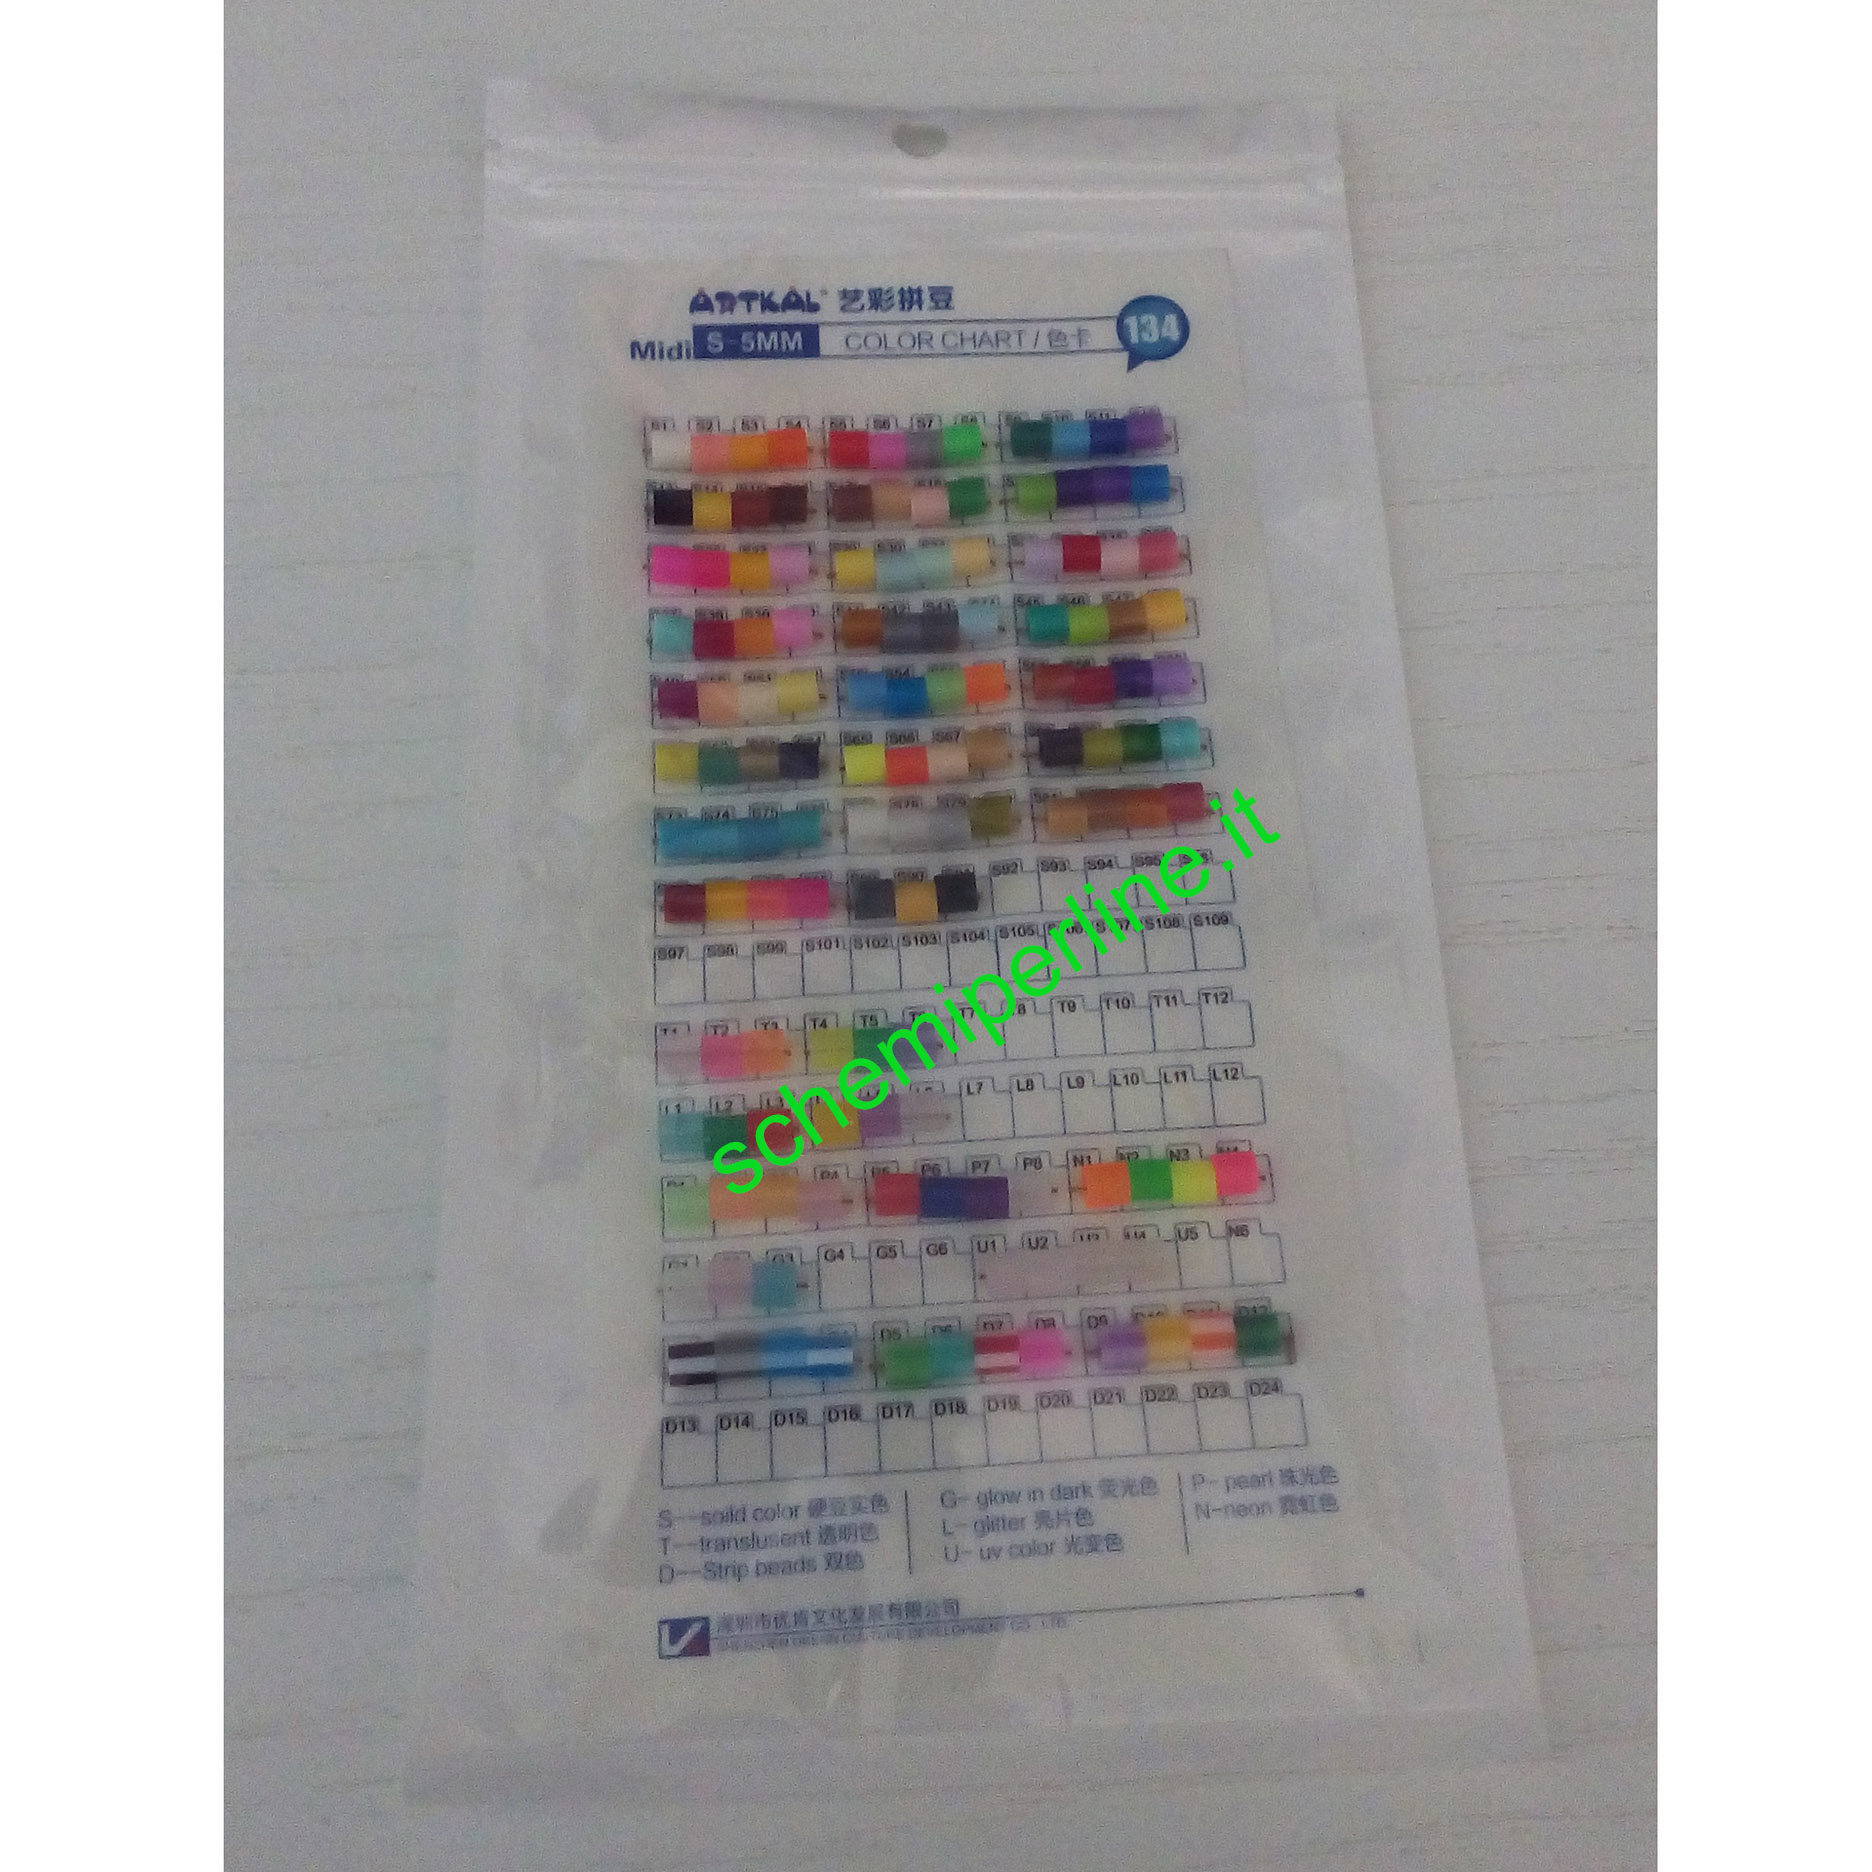 Legenda colori perline da stirare Artkal fuse beads gamma dure midi